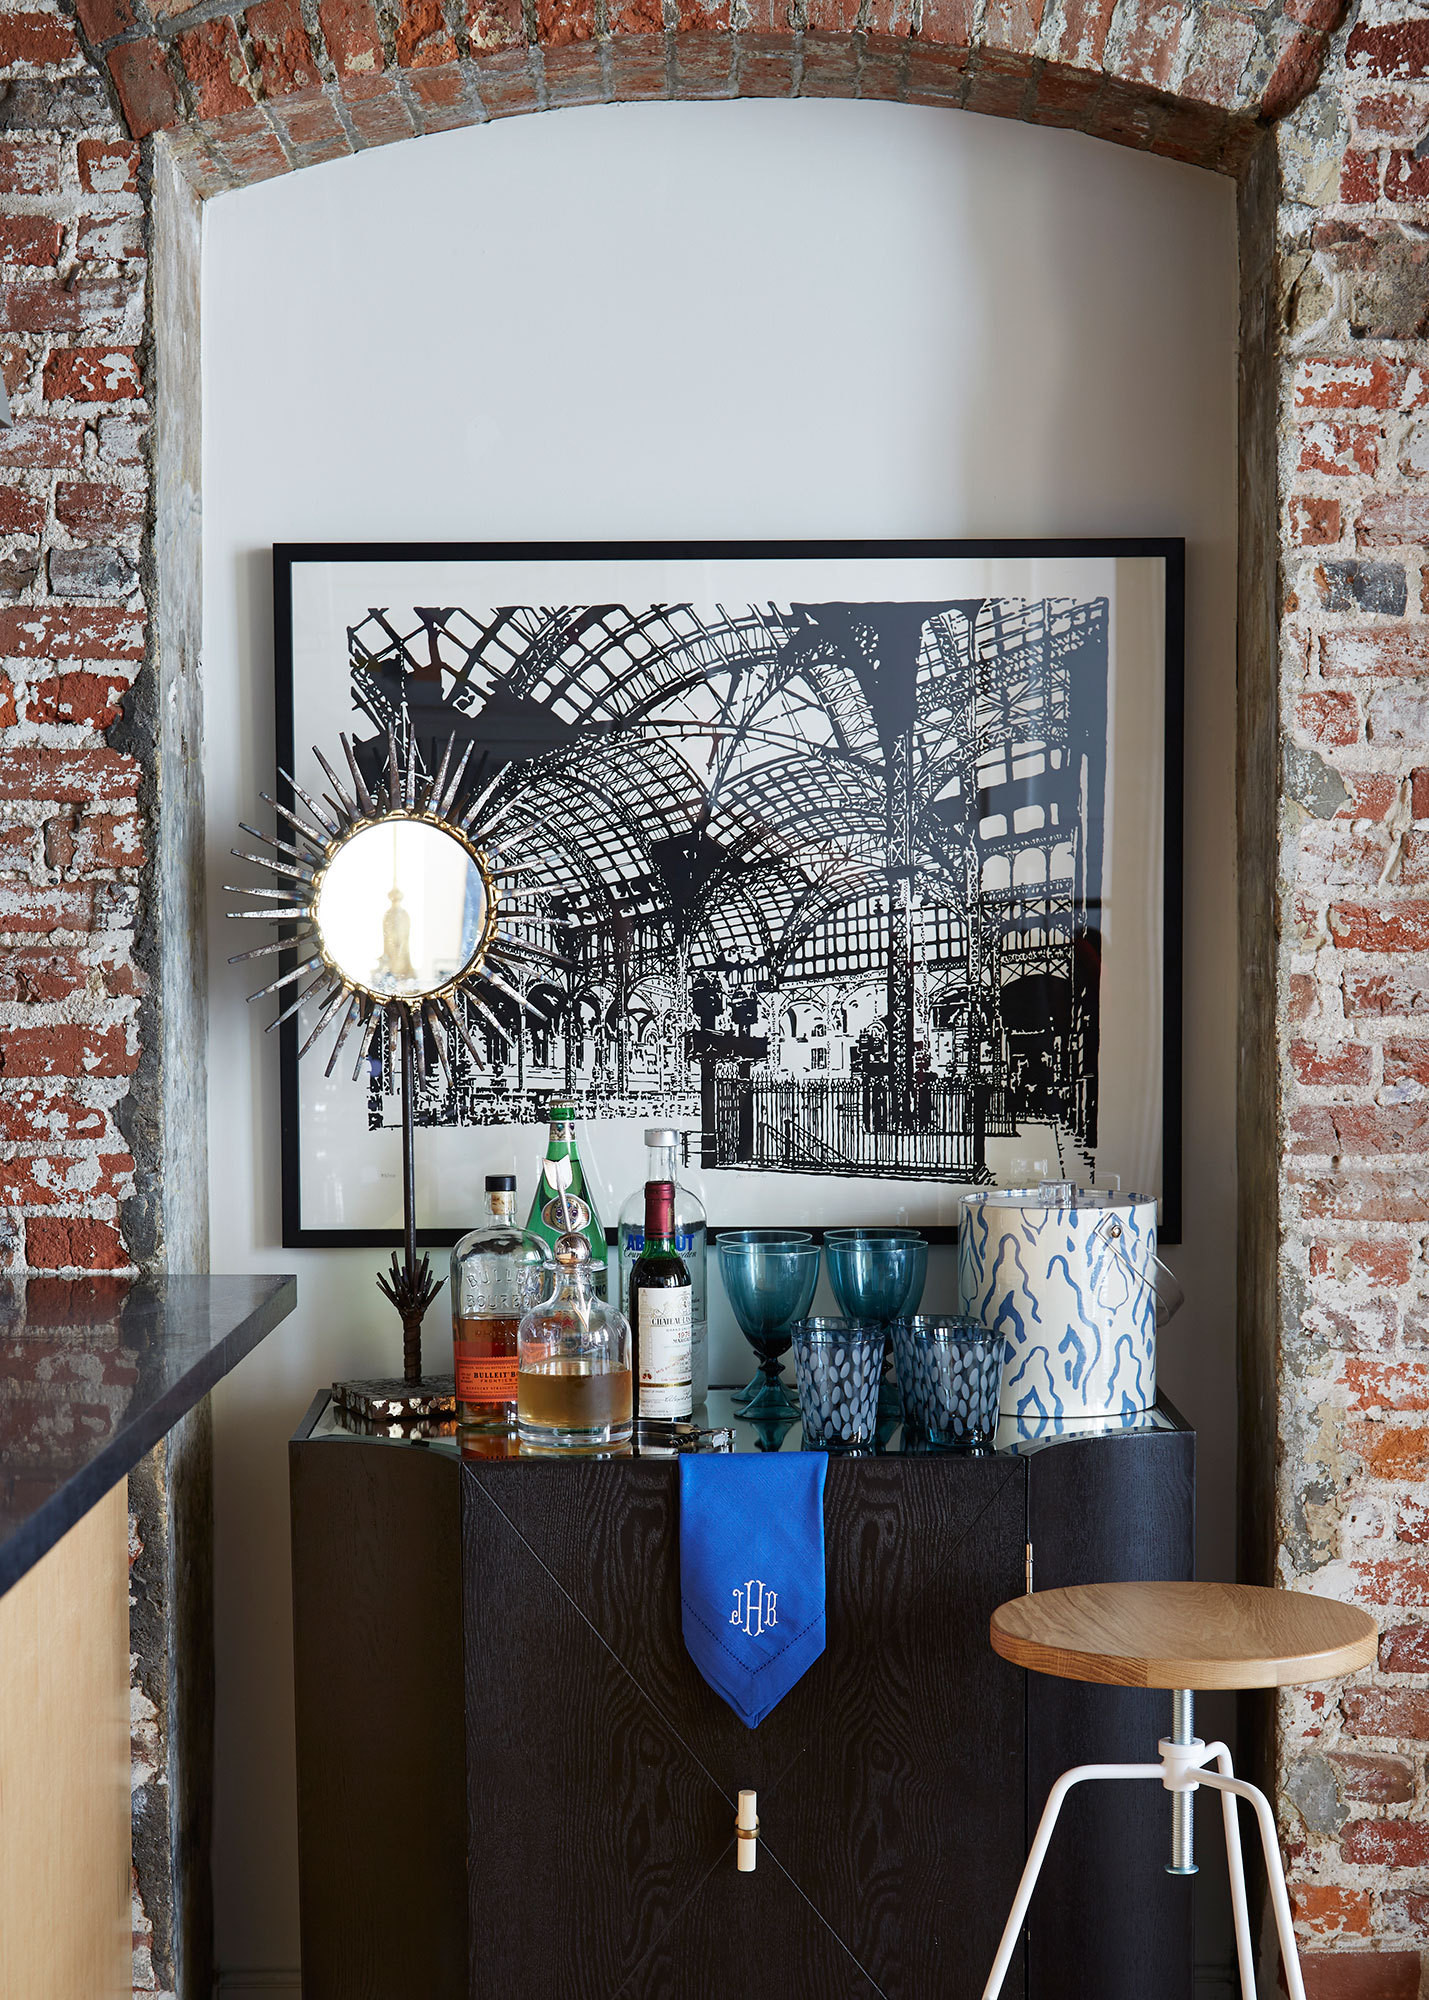 Bar raised home tour j g design in south street seaport for Landelijk interieur voorbeelden